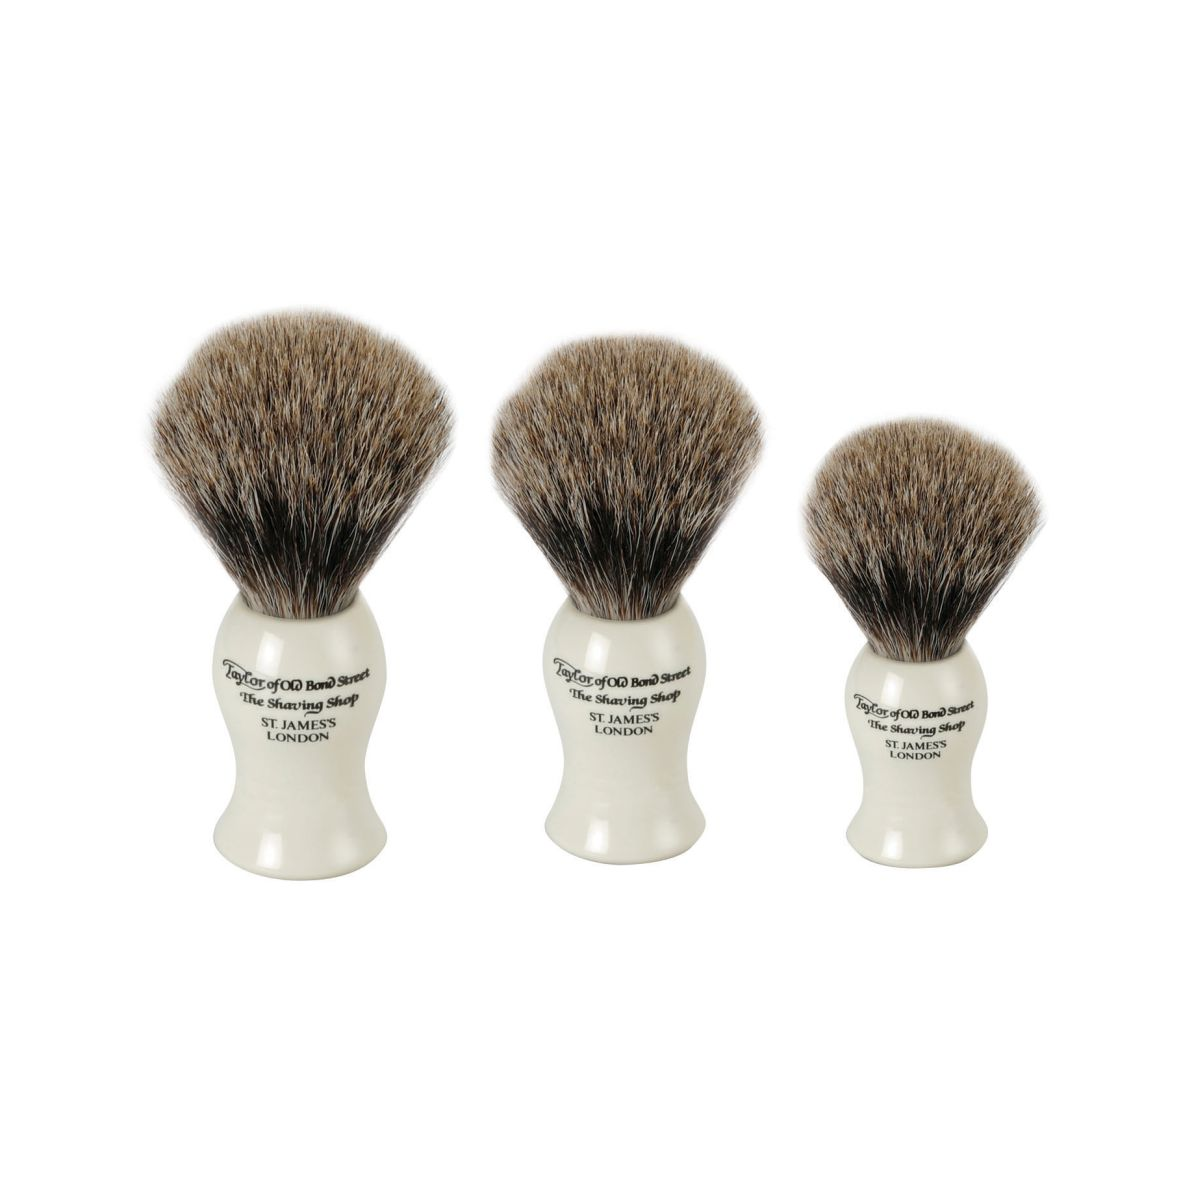 660 Ivory lms - Taylor of Old Bond Street Best Badger Brush - 660IL